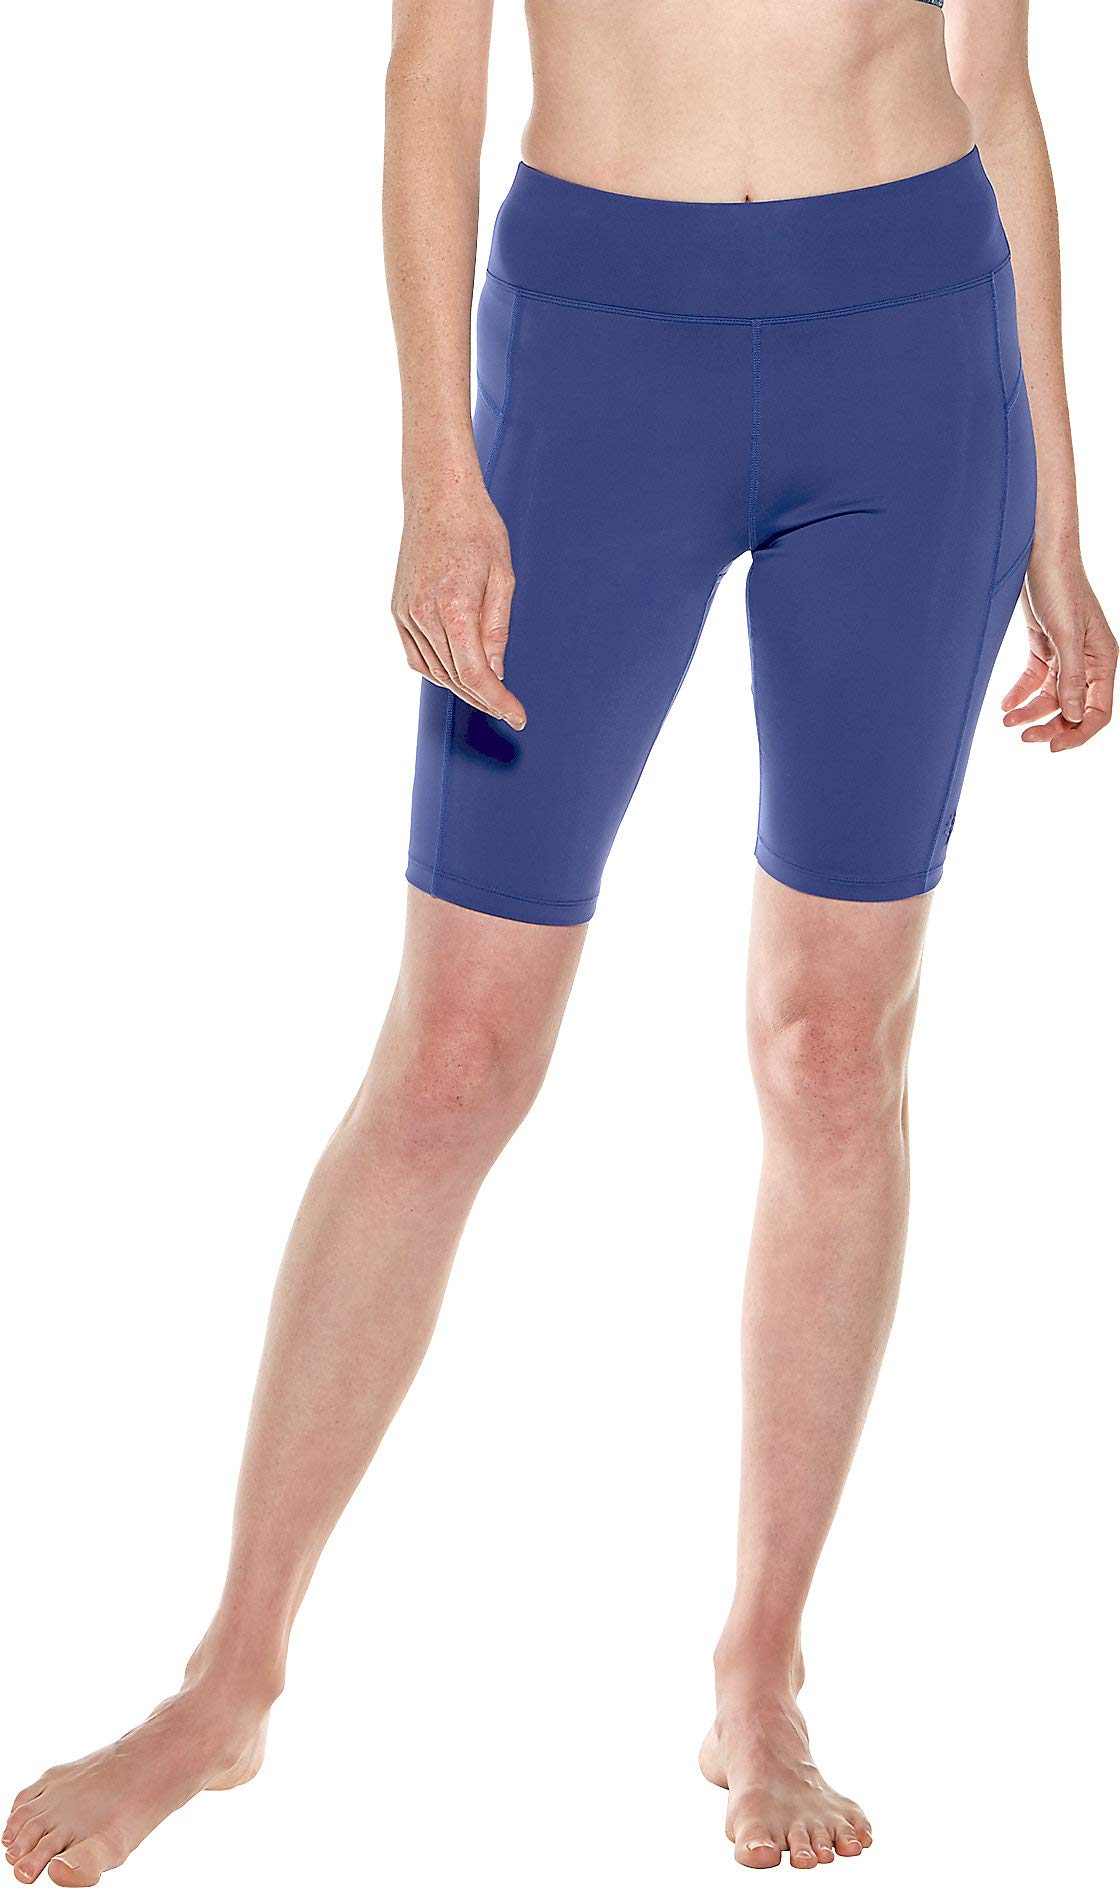 Coolibar UPF 50+ Women's Santa Cruz Swimming Shorts - Sun Protective